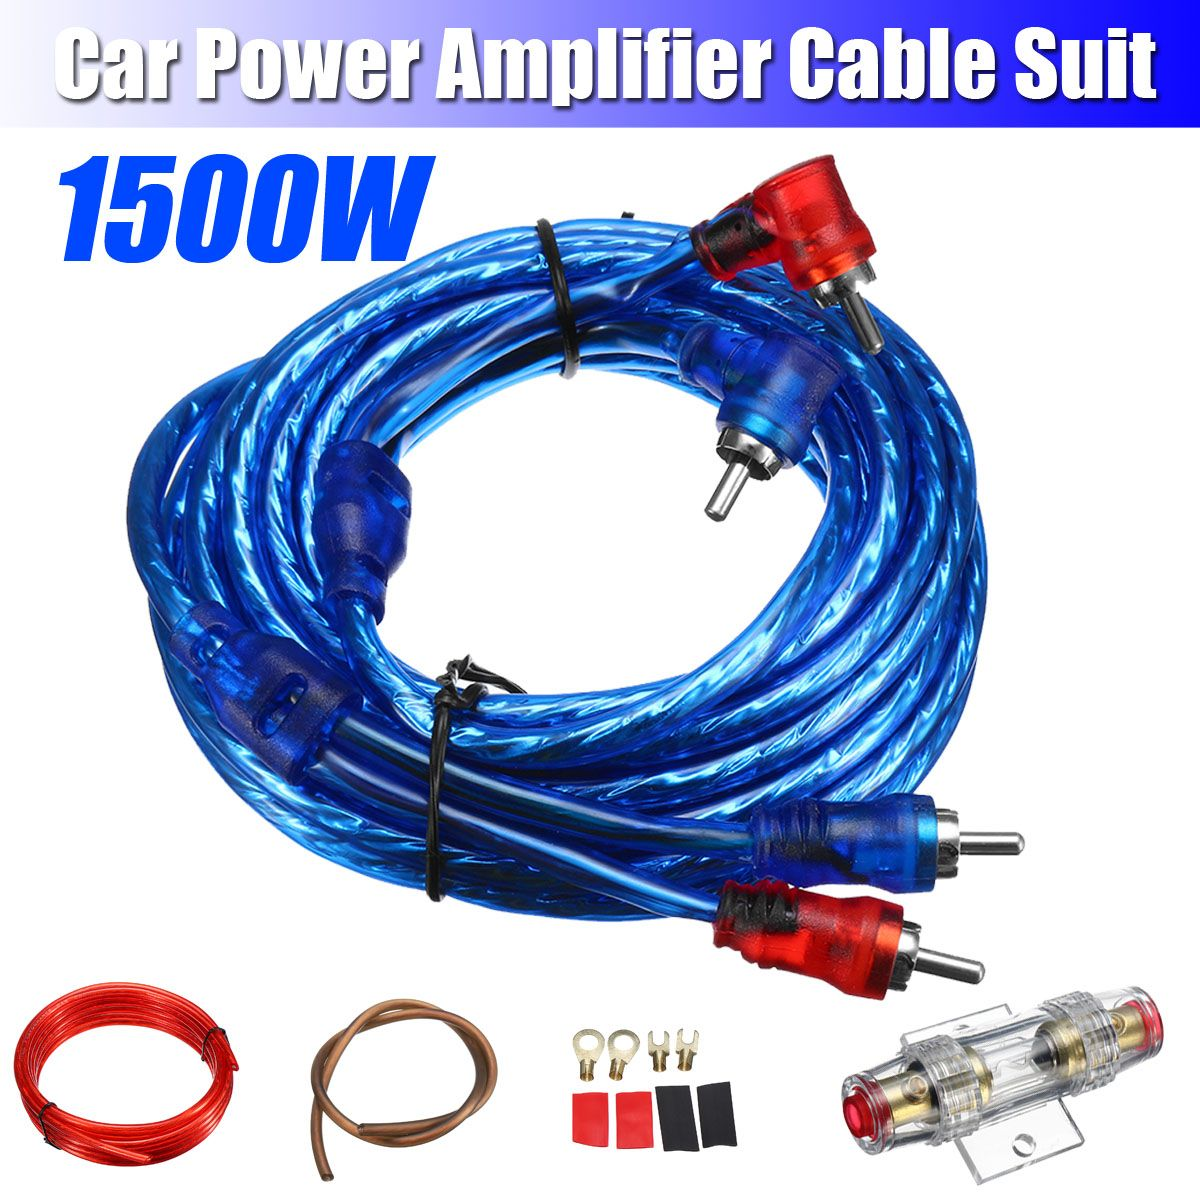 Subwoofer Amplifier 1500w 6ga Car Audio Amp Wiring Fuse Manual Guide